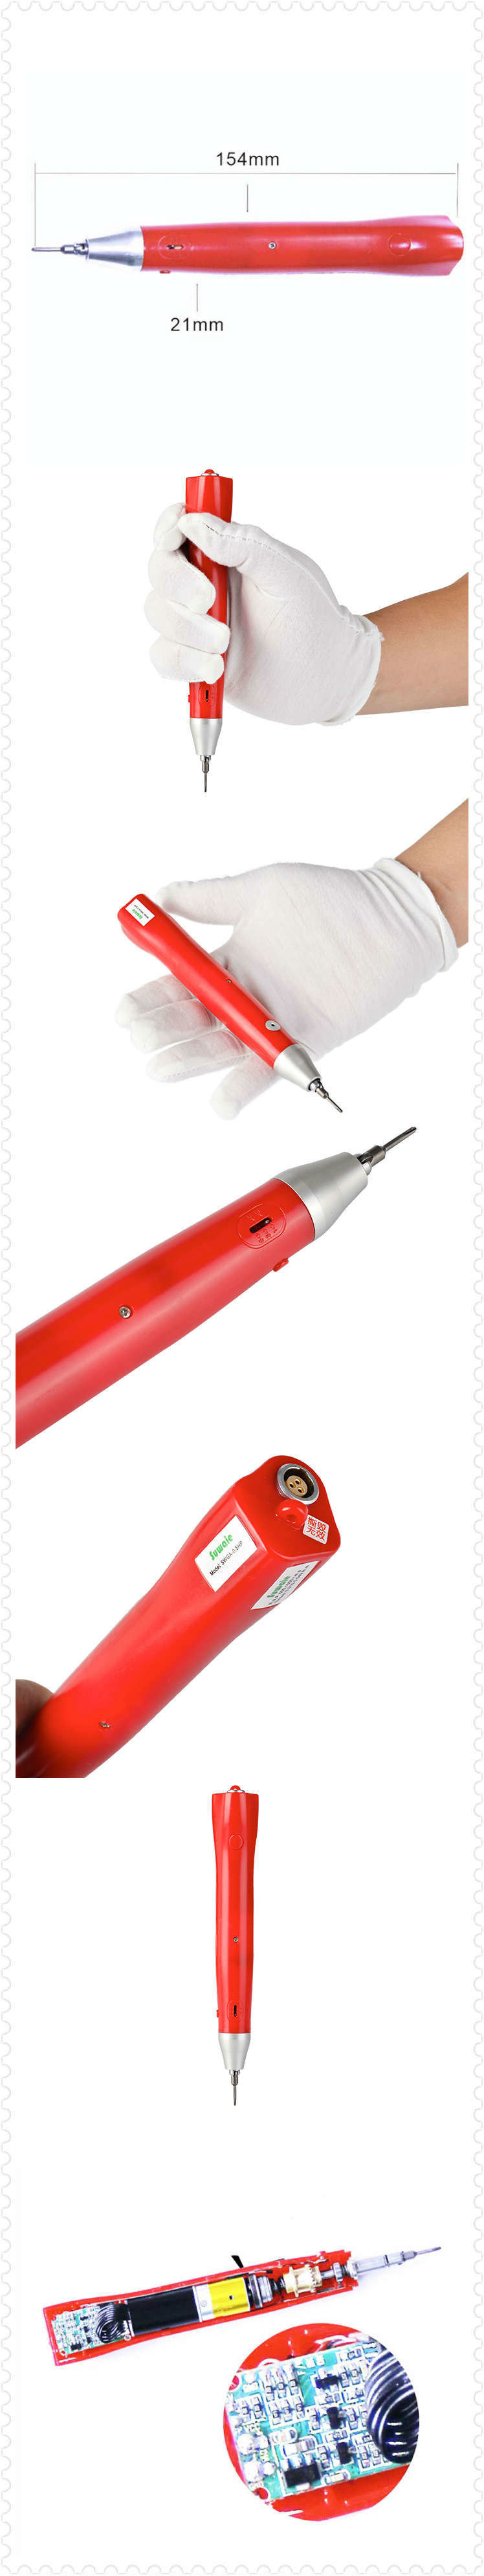 Automatic Power Screwdriver 100-250V Assembly Tools Electric Brushless Screwdriver